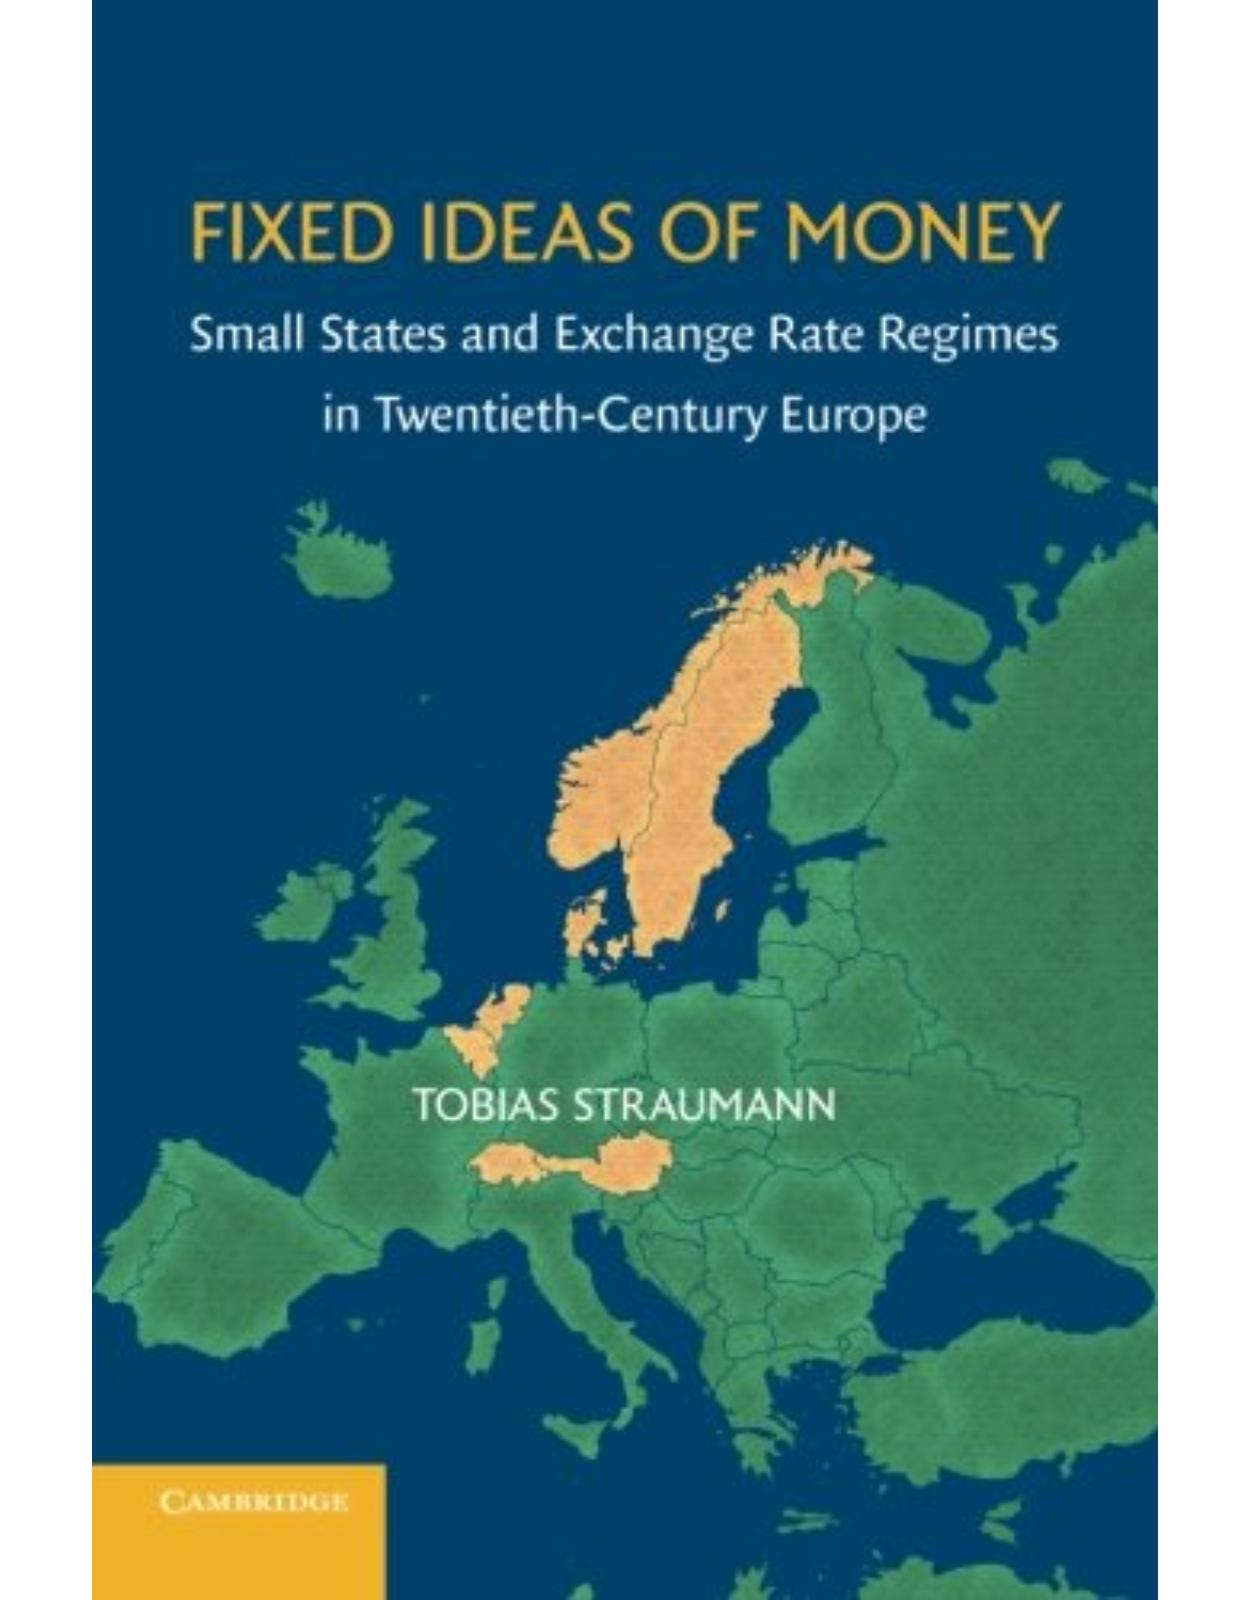 Fixed Ideas of Money: Small States and Exchange Rate Regimes in Twentieth-Century Europe (Studies in Macroeconomic History)